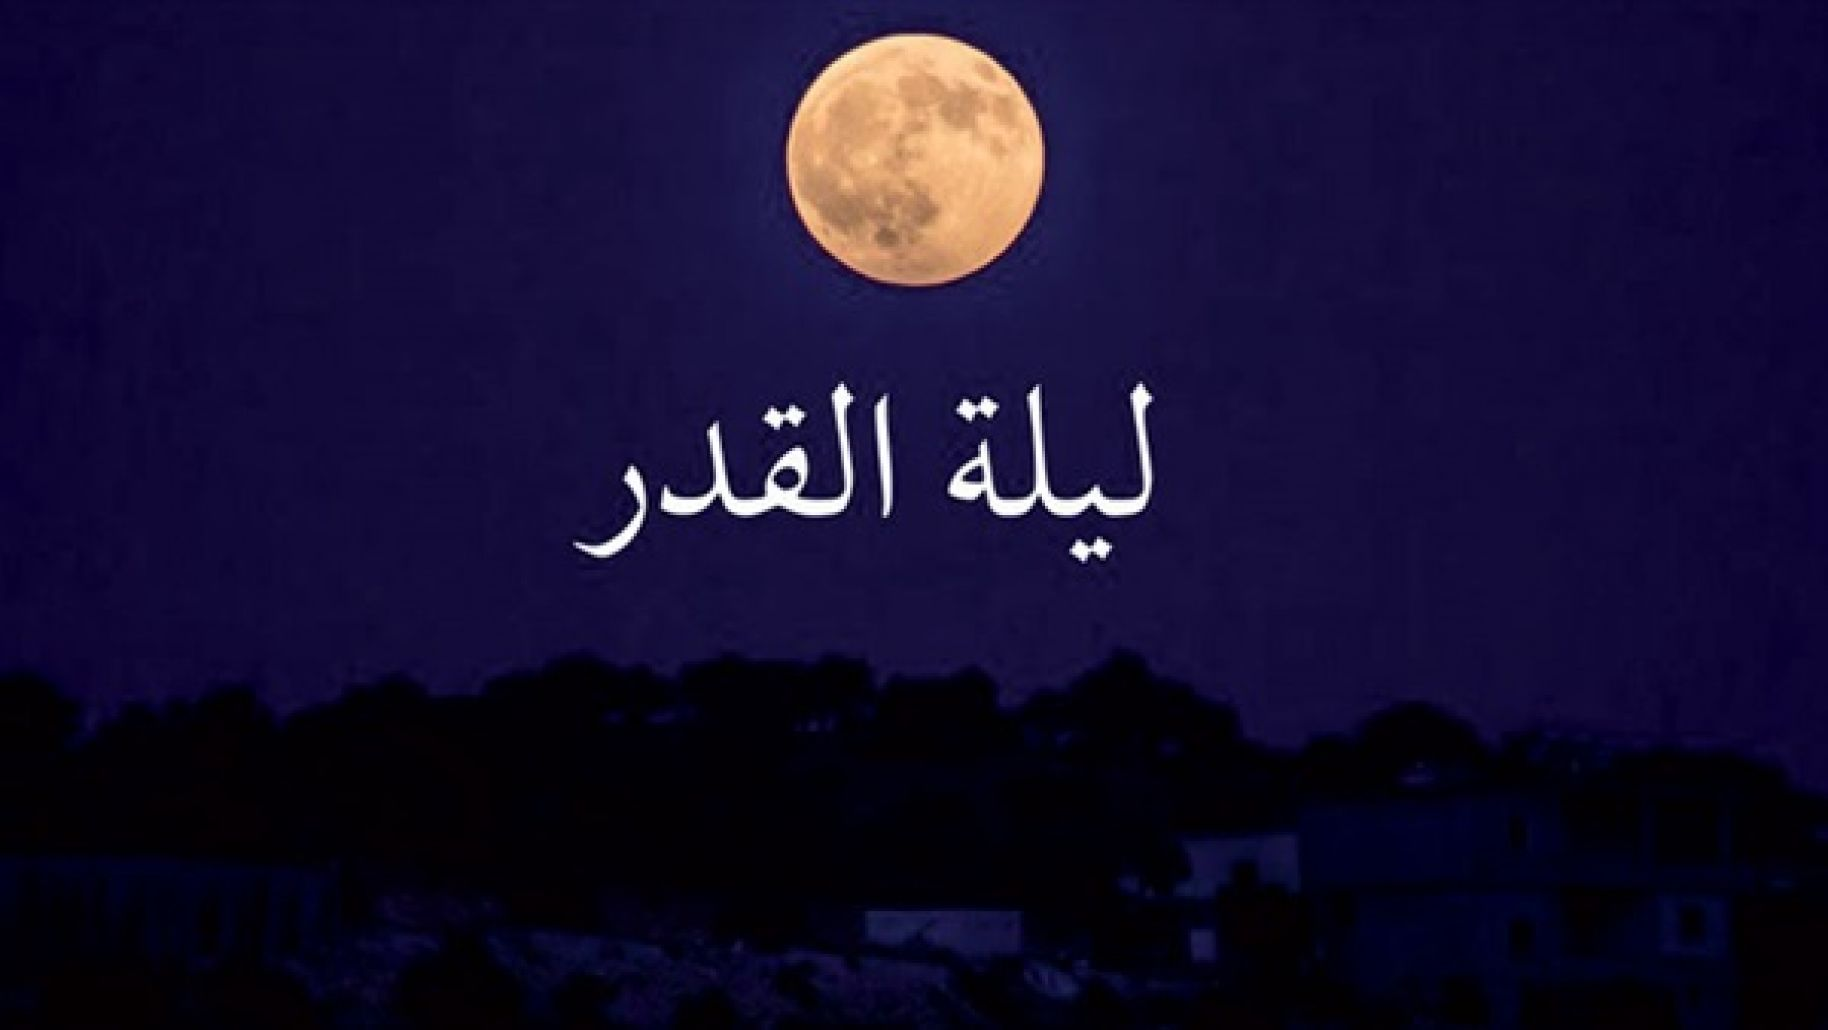 Signs of Laylat al-Qadr, which the Prophet guided us to and prayers for Laylat al-Qadr, and how a Muslim perceives this night 2